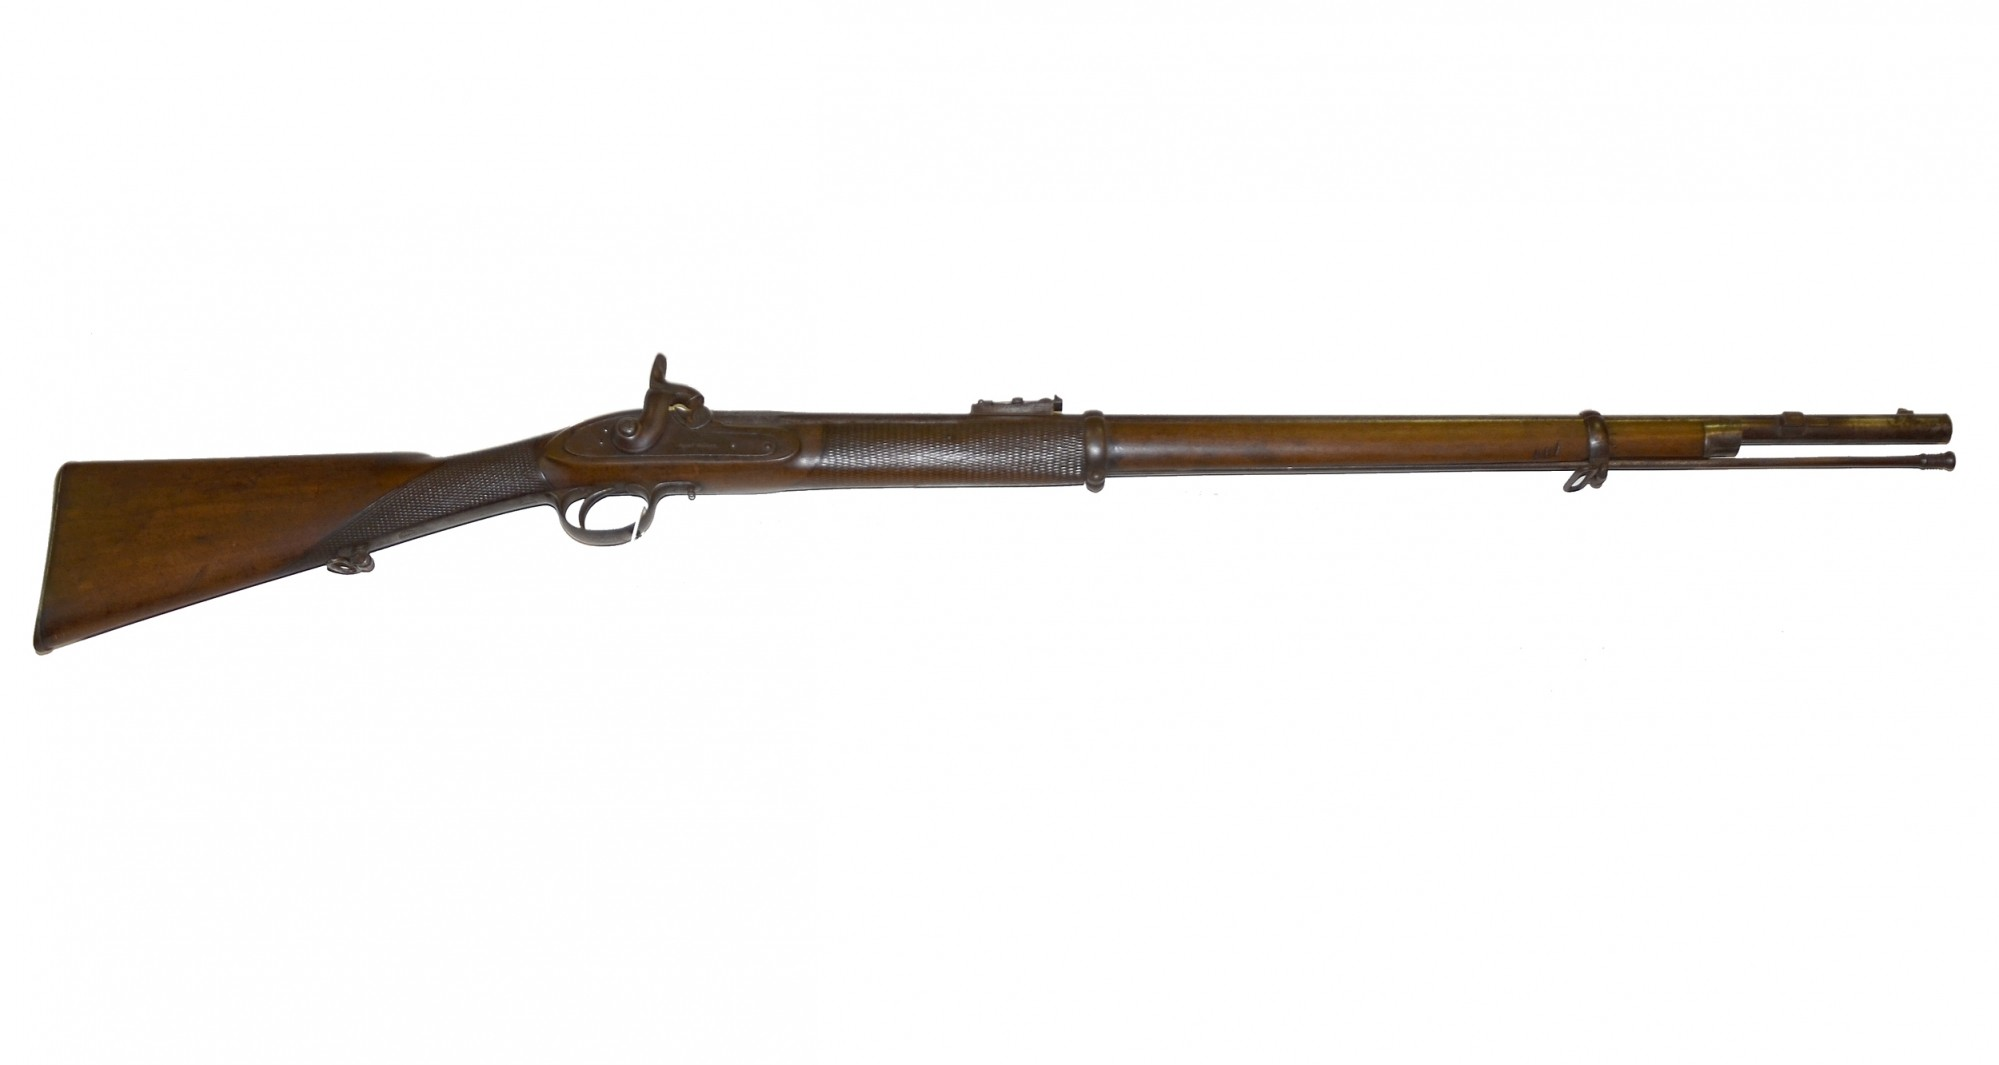 VERY GOOD CONDITION, BRITISH 1856 PATTERN ENFIELD 'VOLUNTEER' RIFLE BY GUNSMITH ALEXANDER HENRY